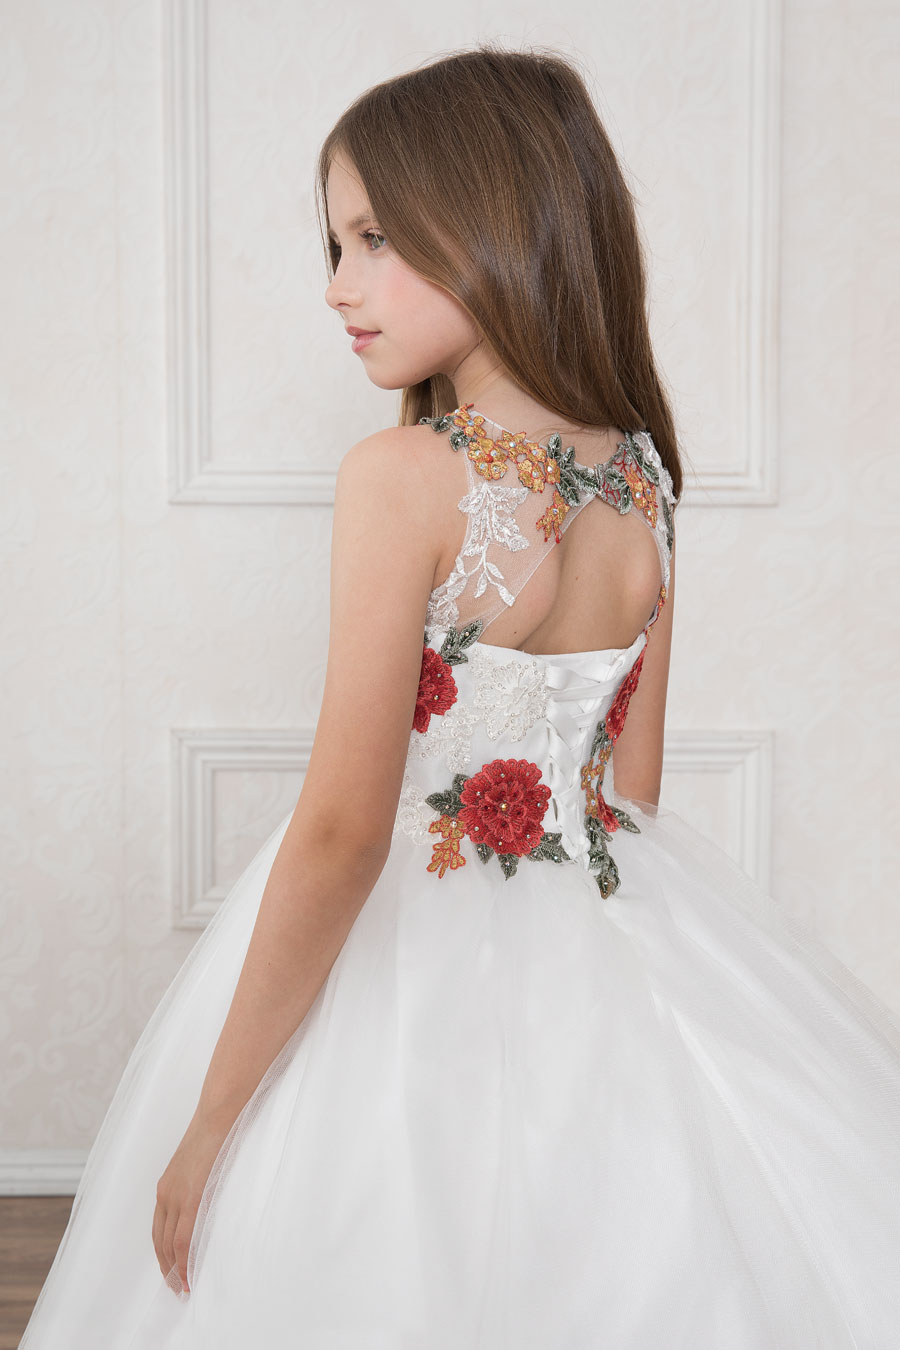 First Communion Dress with Multi Color Floral Bodice   Floral Holy ...